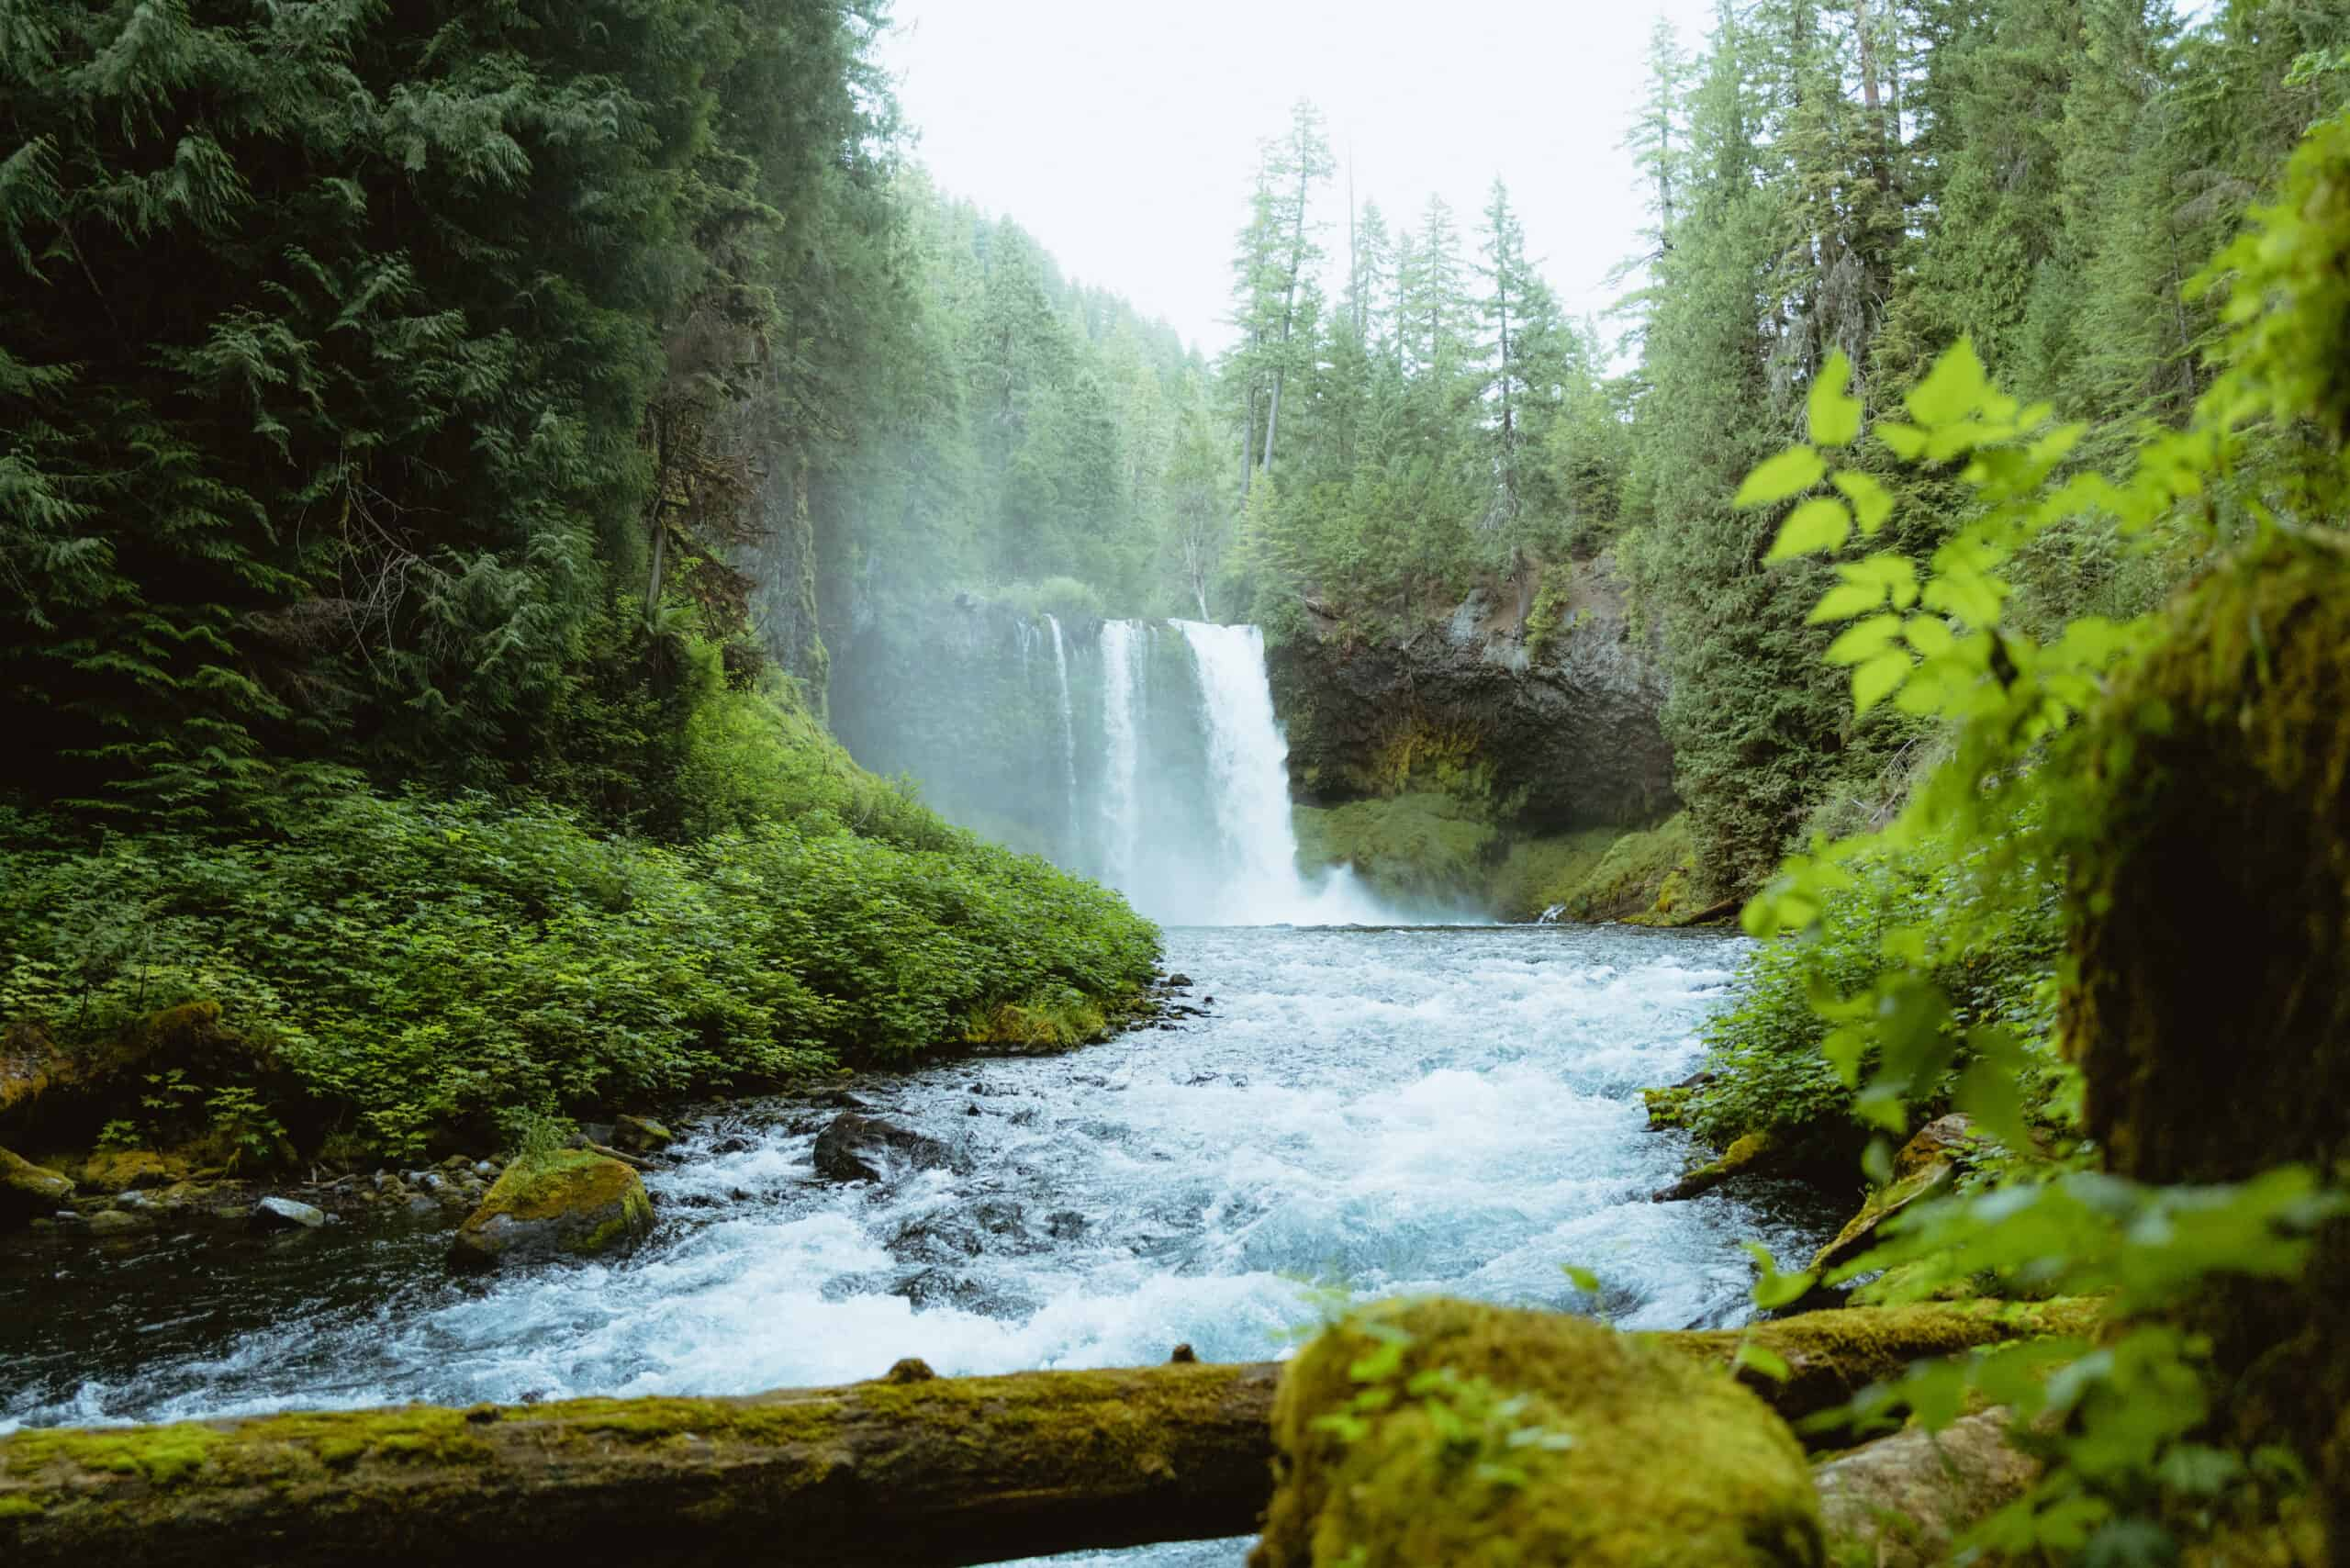 150+ of the best Oregon waterfalls you need to add to your bucket list